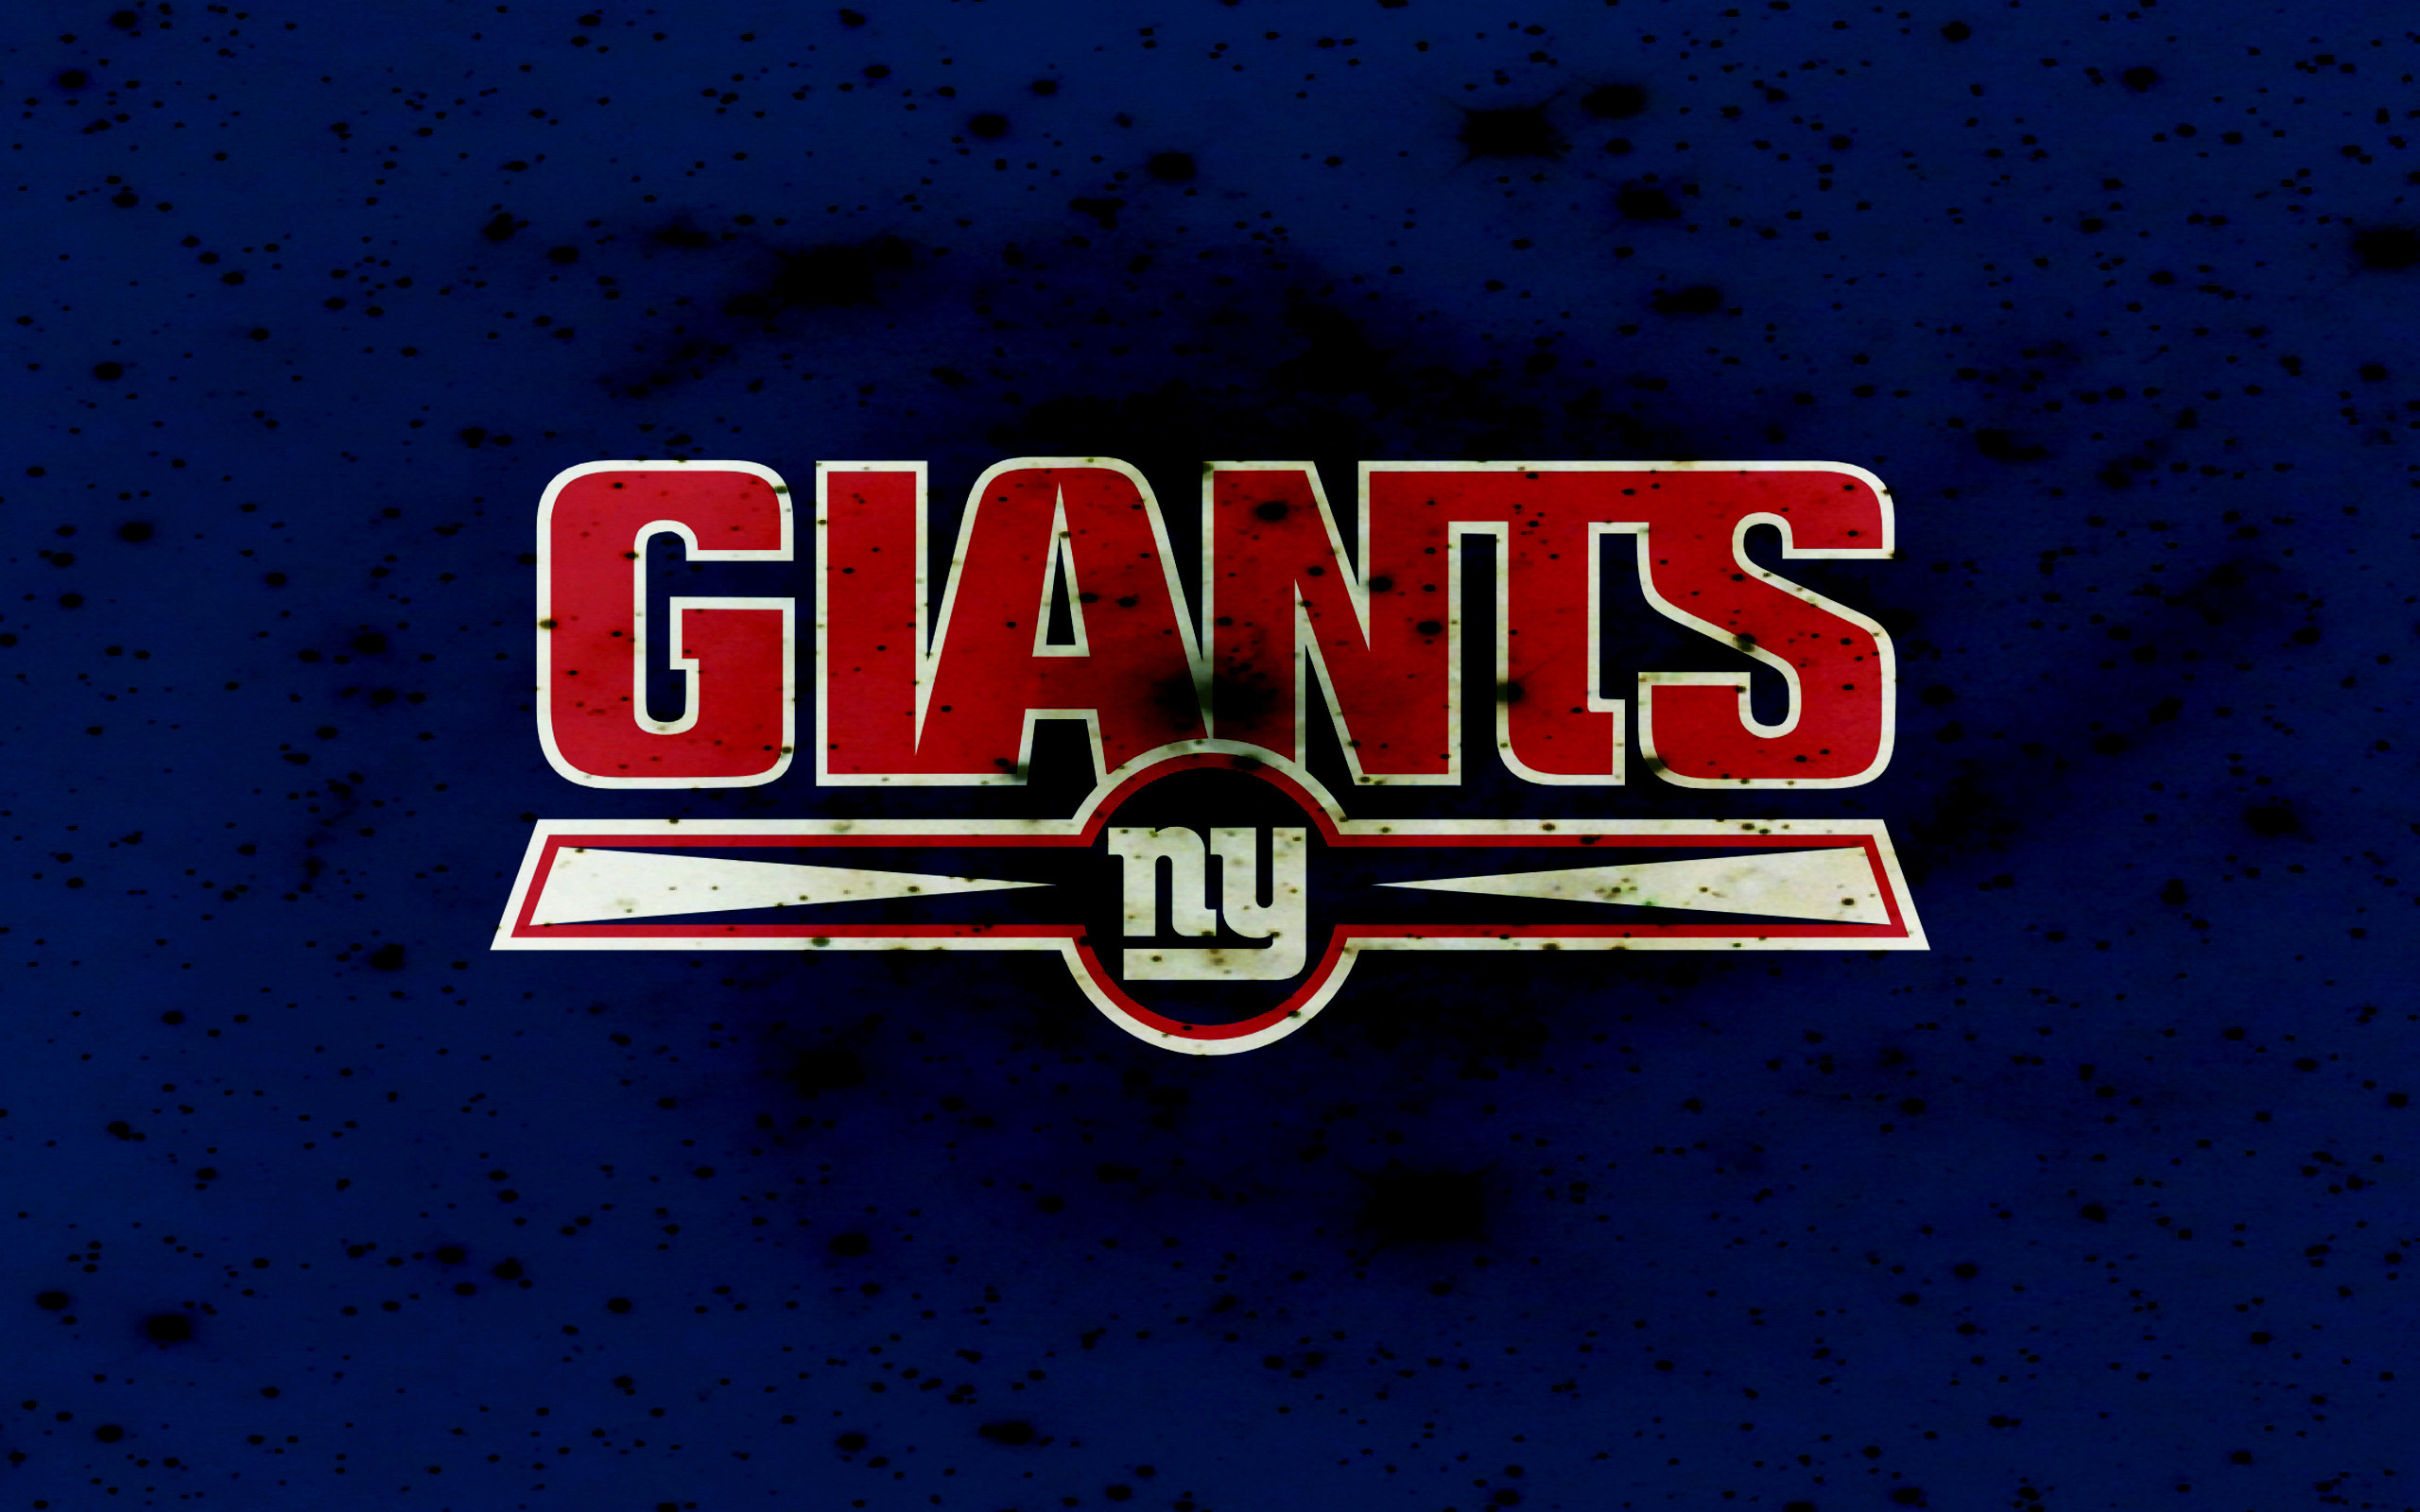 Steve Quayle Genesis 6 GIANTS and ancient history